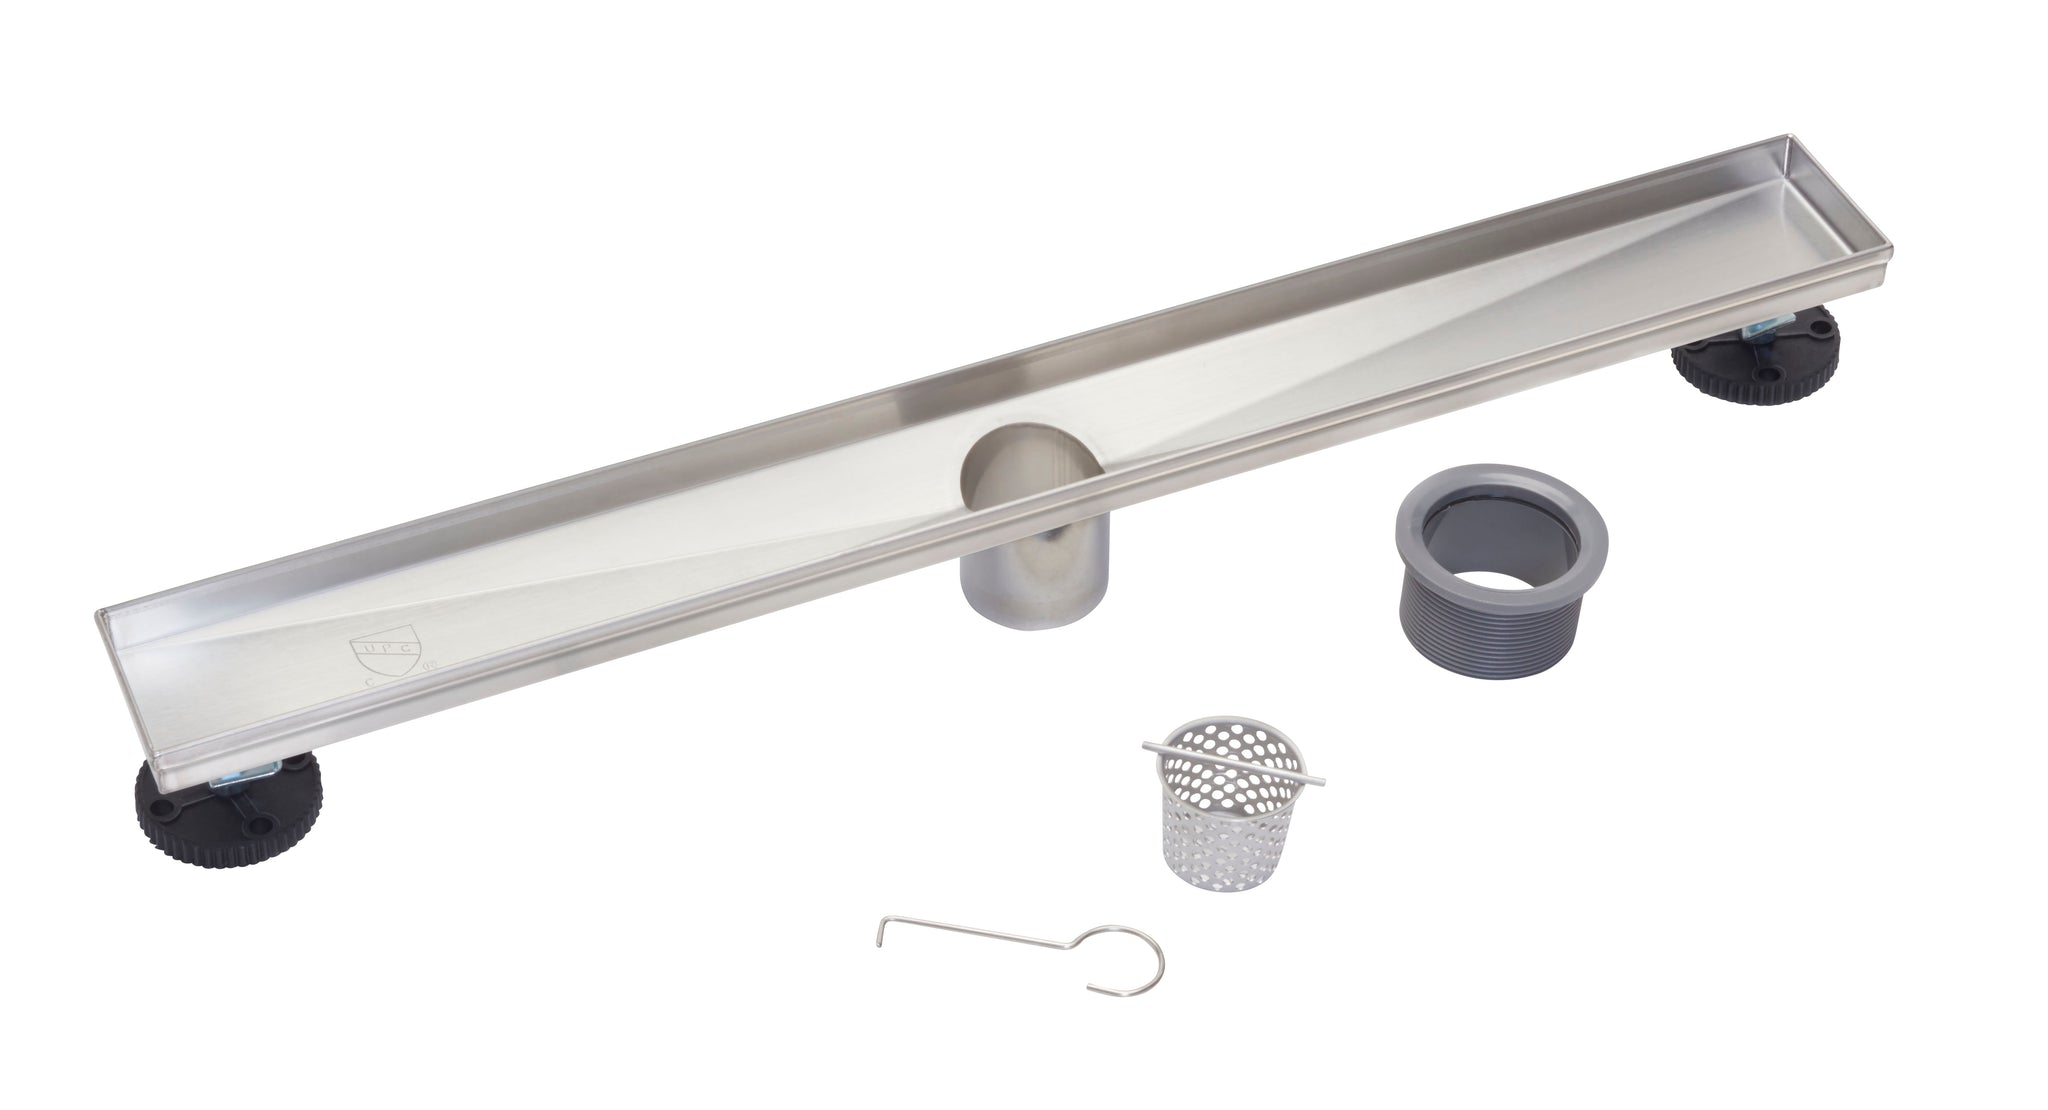 LINEAR SHOWER DRAIN OFFSET LINEAR PATTERN AVAILABLE IN CHROME OR BRUSHED NICKEL